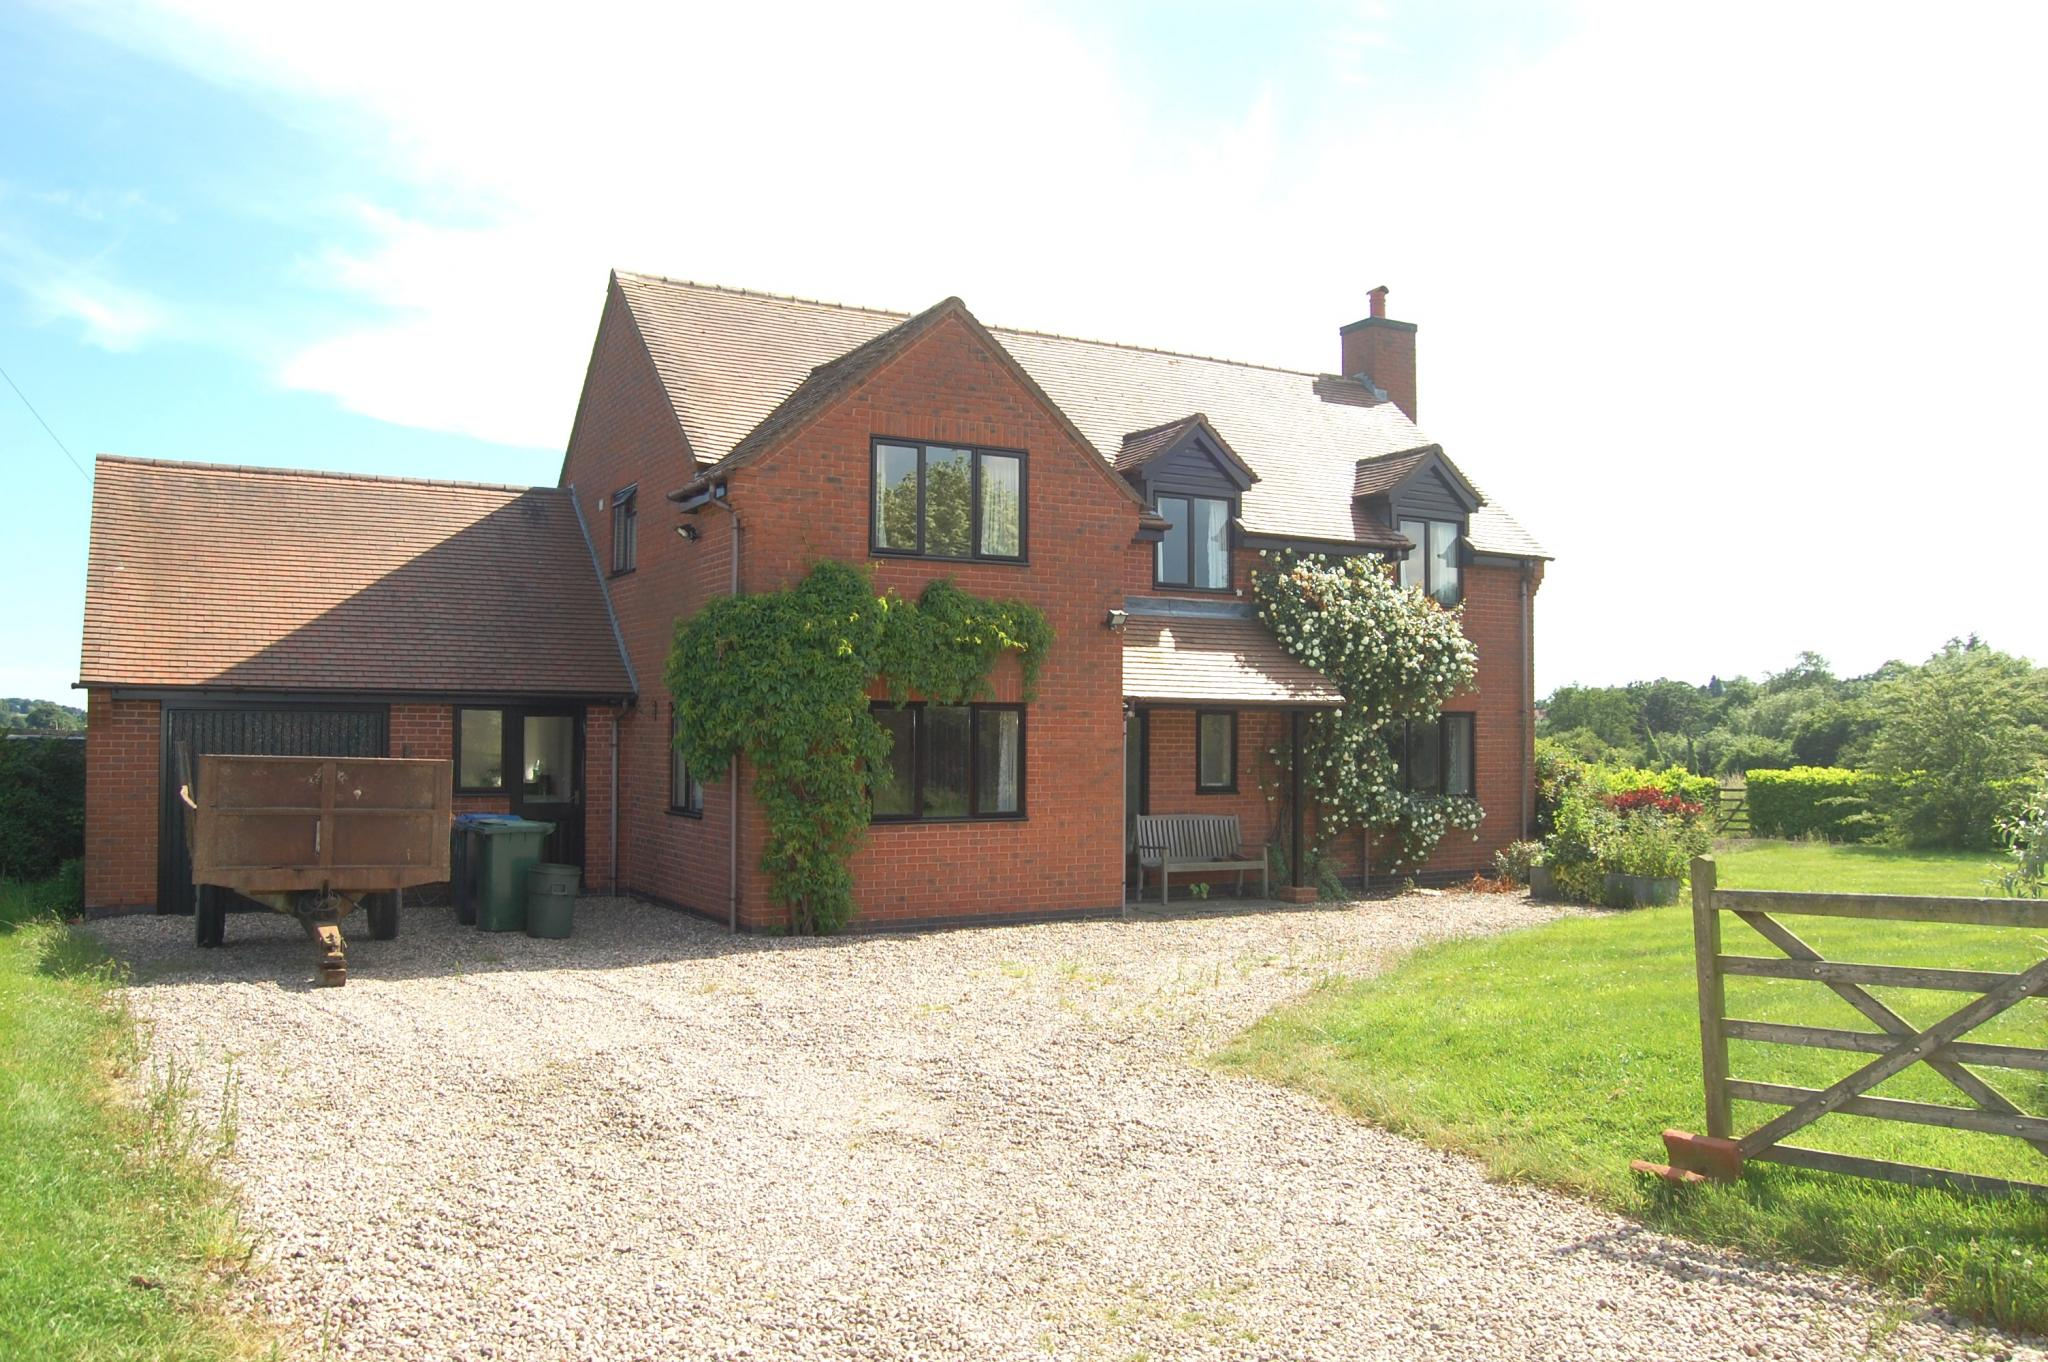 4 bedroom detached house To Let in Wootton Wawen, Henley-in-arden - Property photograph